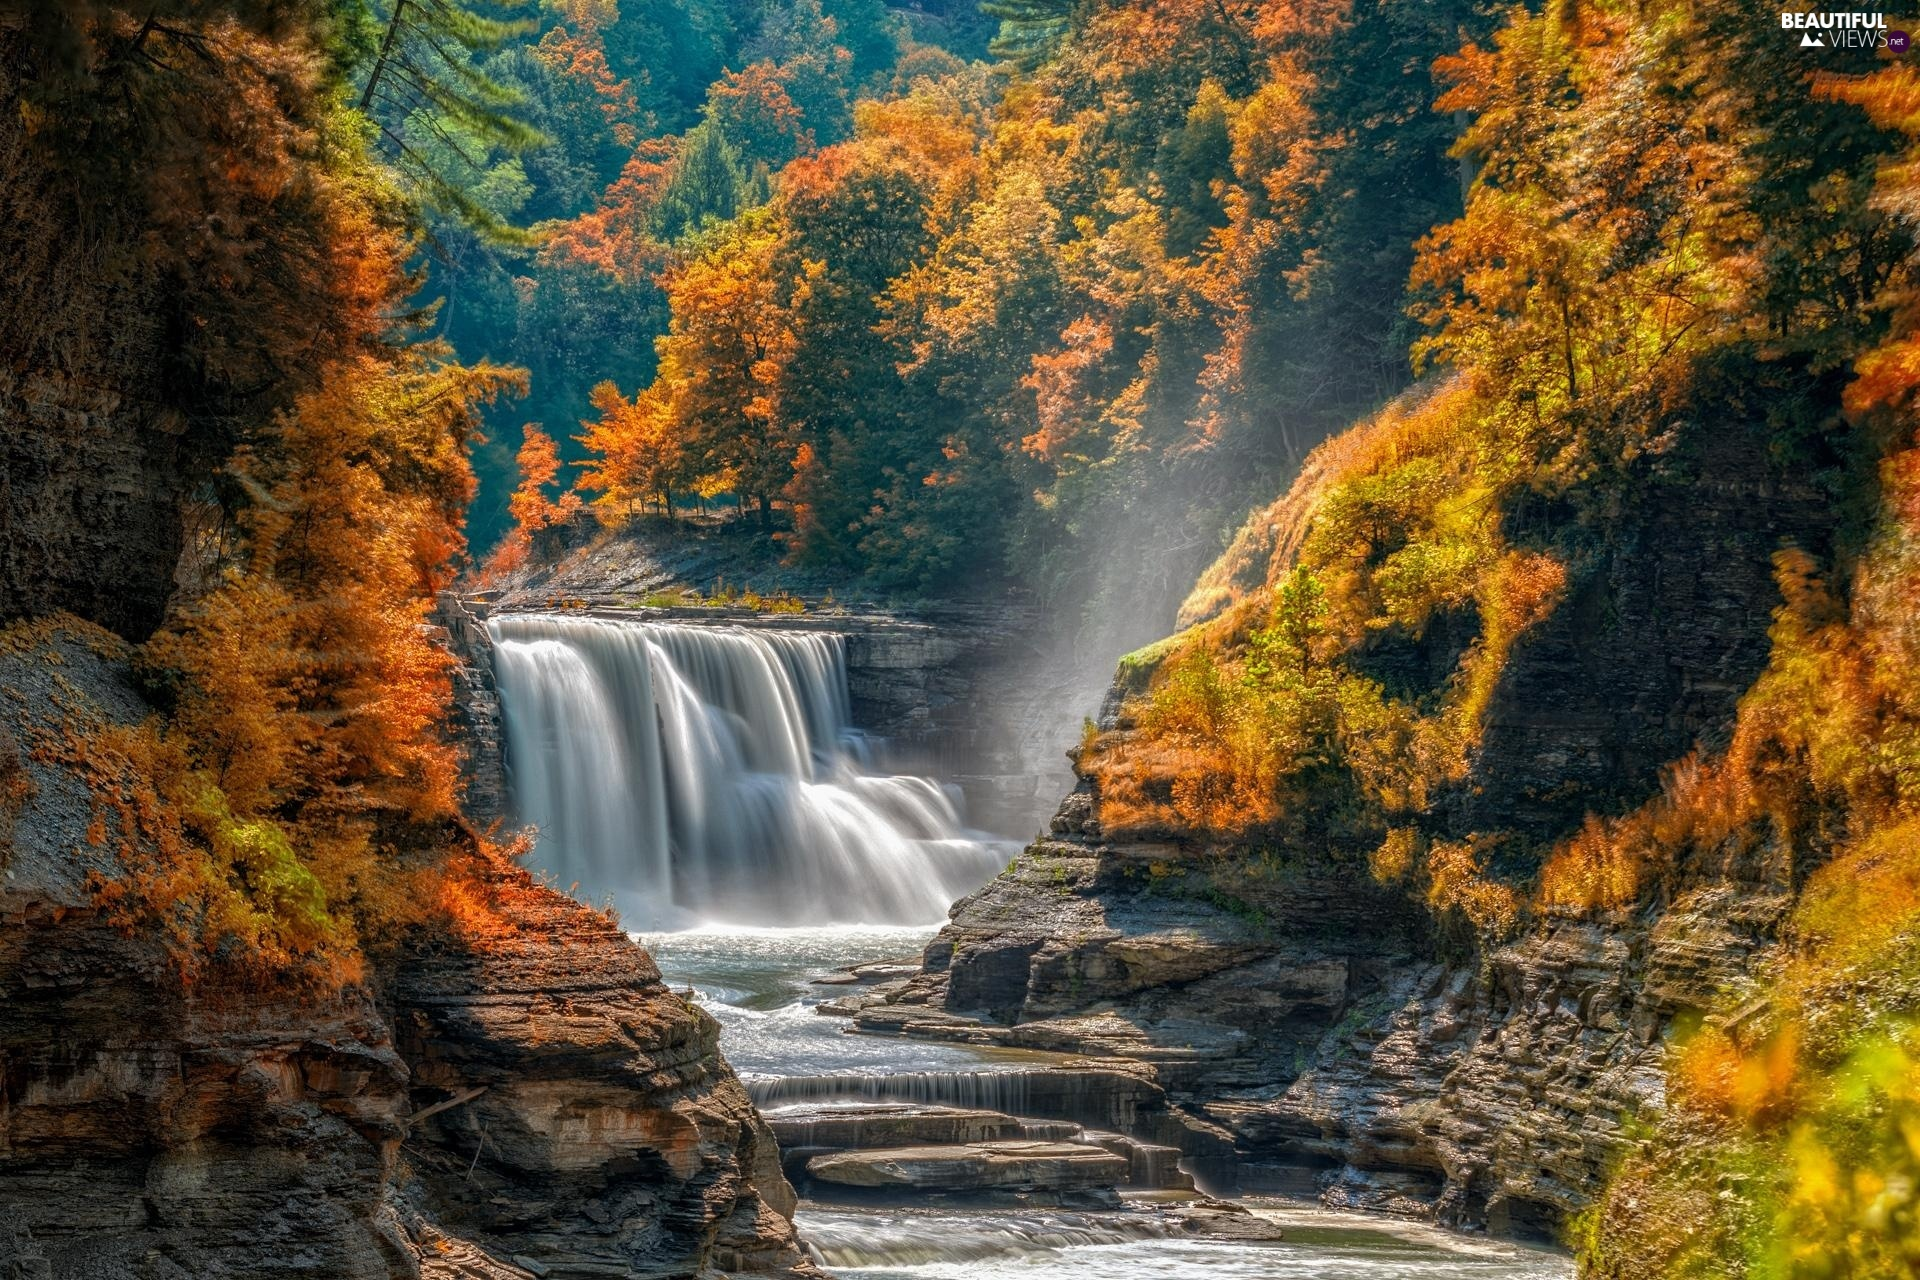 viewes, autumn, Fog, waterfall, rocks, trees, forest, River